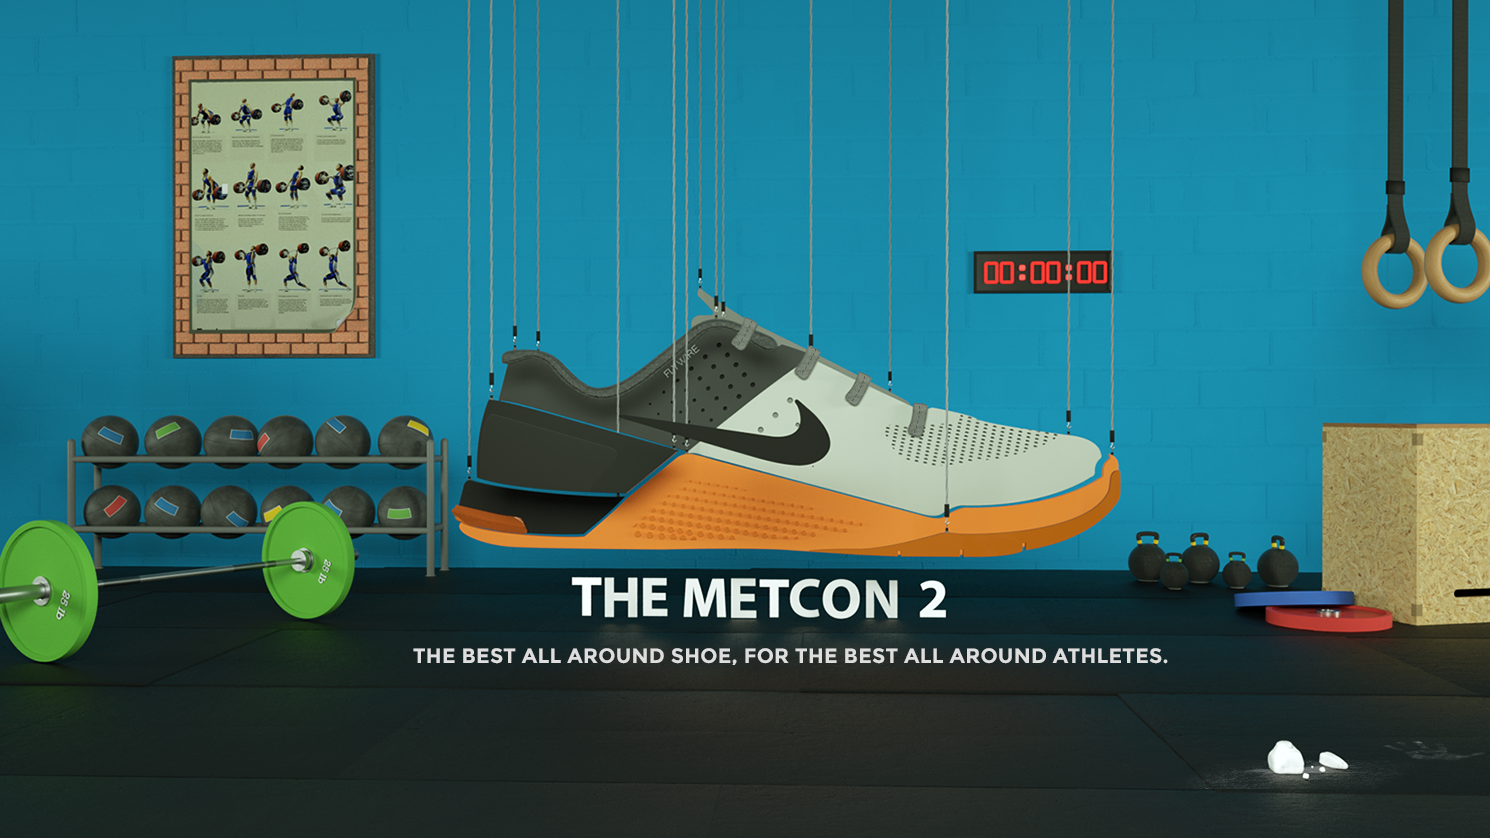 NIKE Metcon Illustration